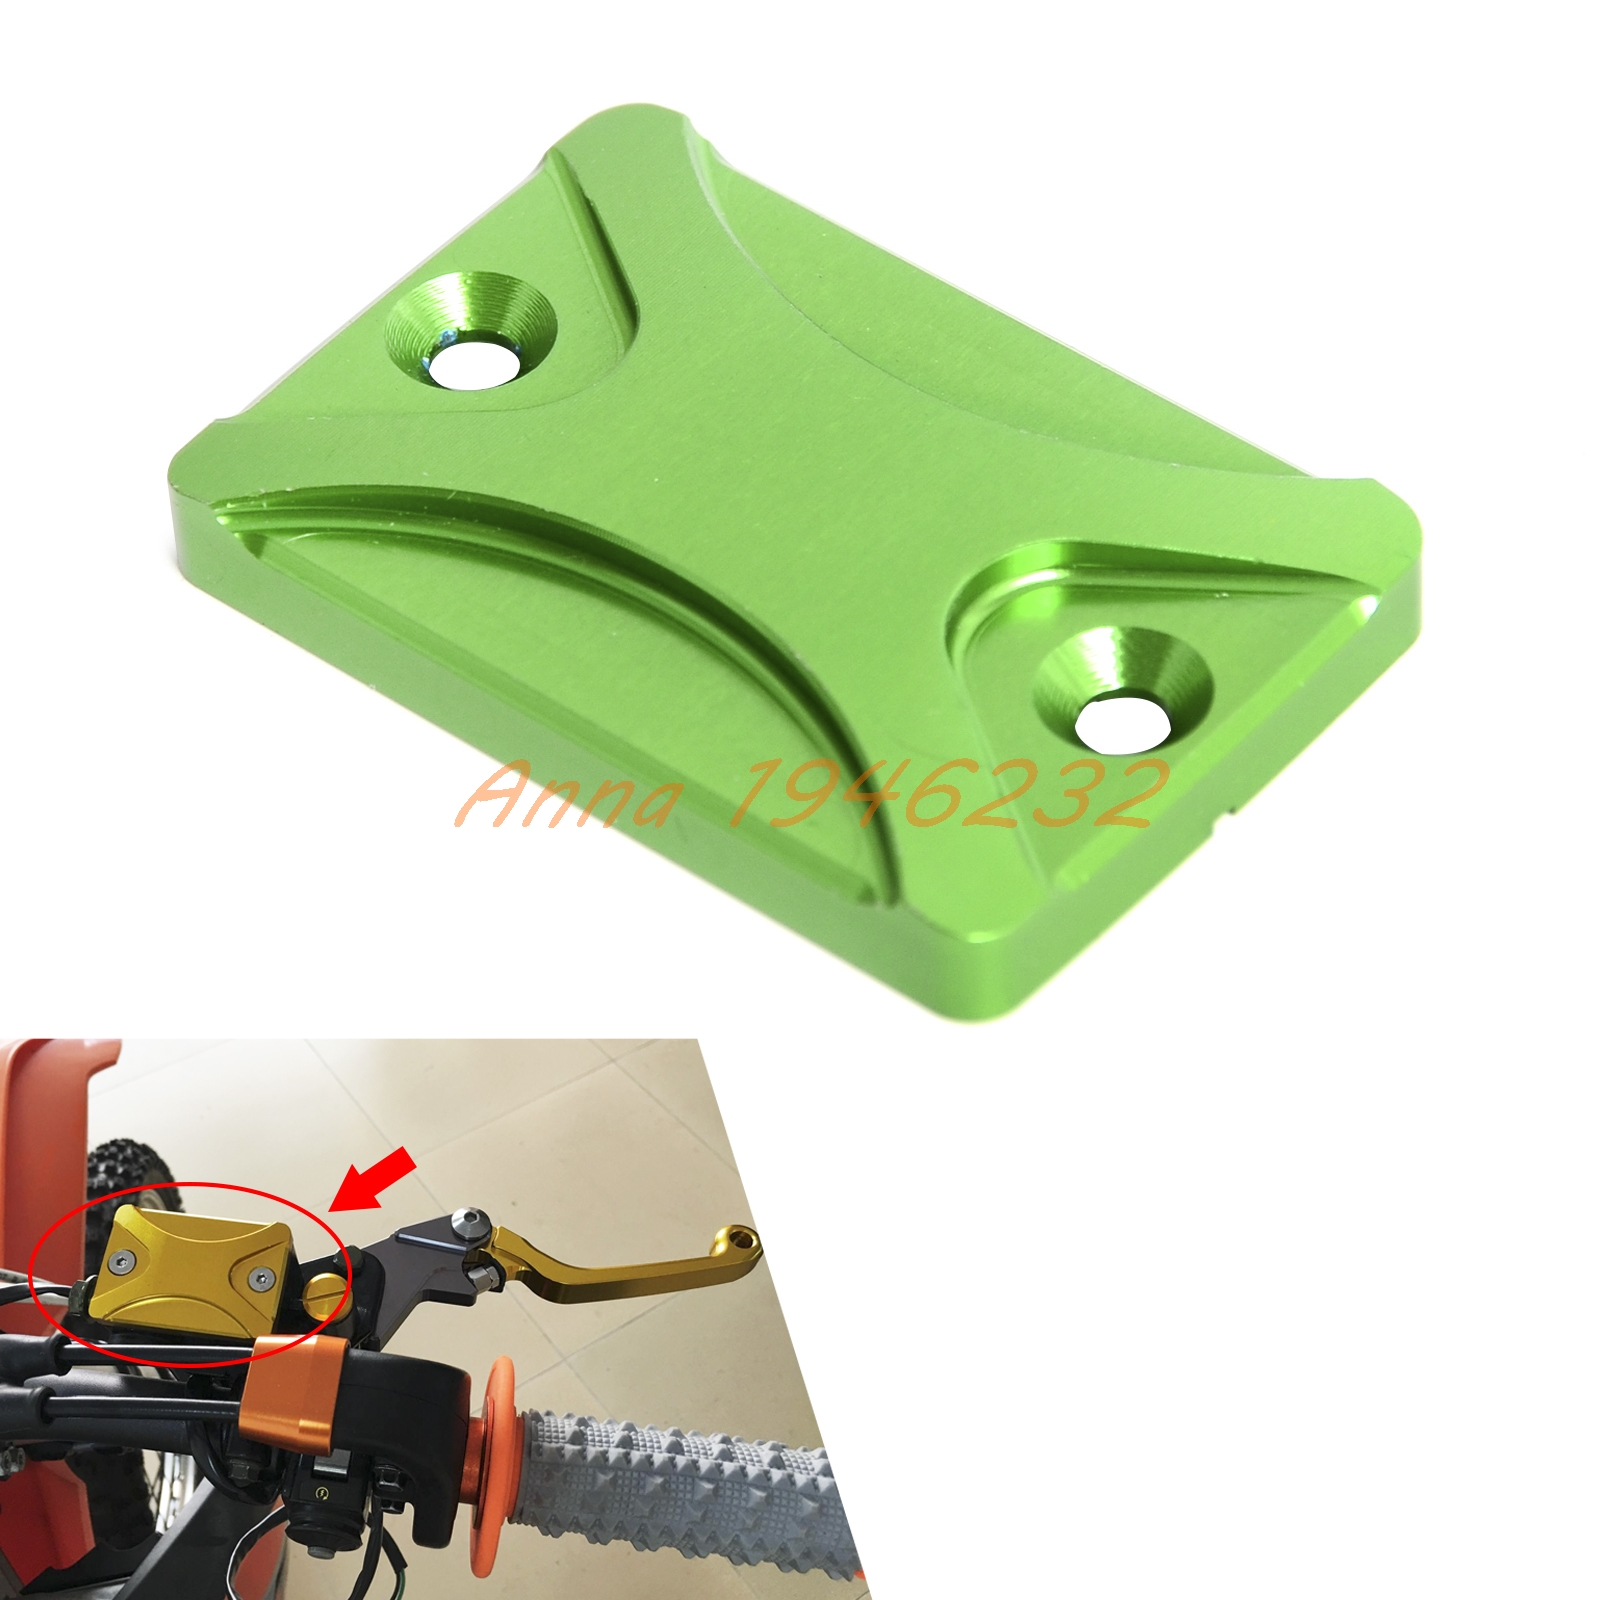 Motorcycle Brake Reservoir Cylinder Cover For Kawasaki KLX/KLF/KDX/ATV KVF 125-700/ NINJA 250R Z300 BRUTE FORCE 750